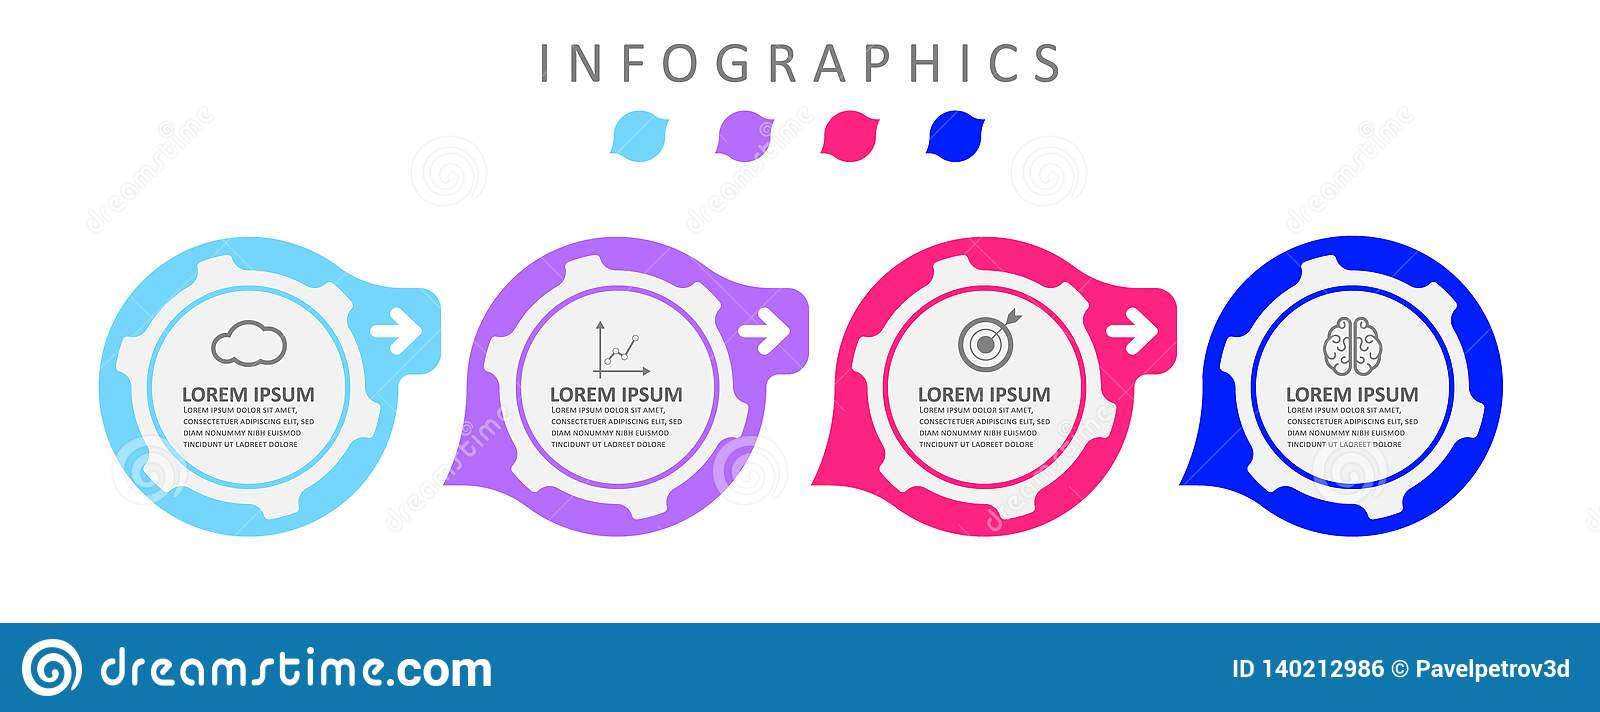 Infographic label design template with icons. Business data visualization Can be used for process diagram, presentations, workflow